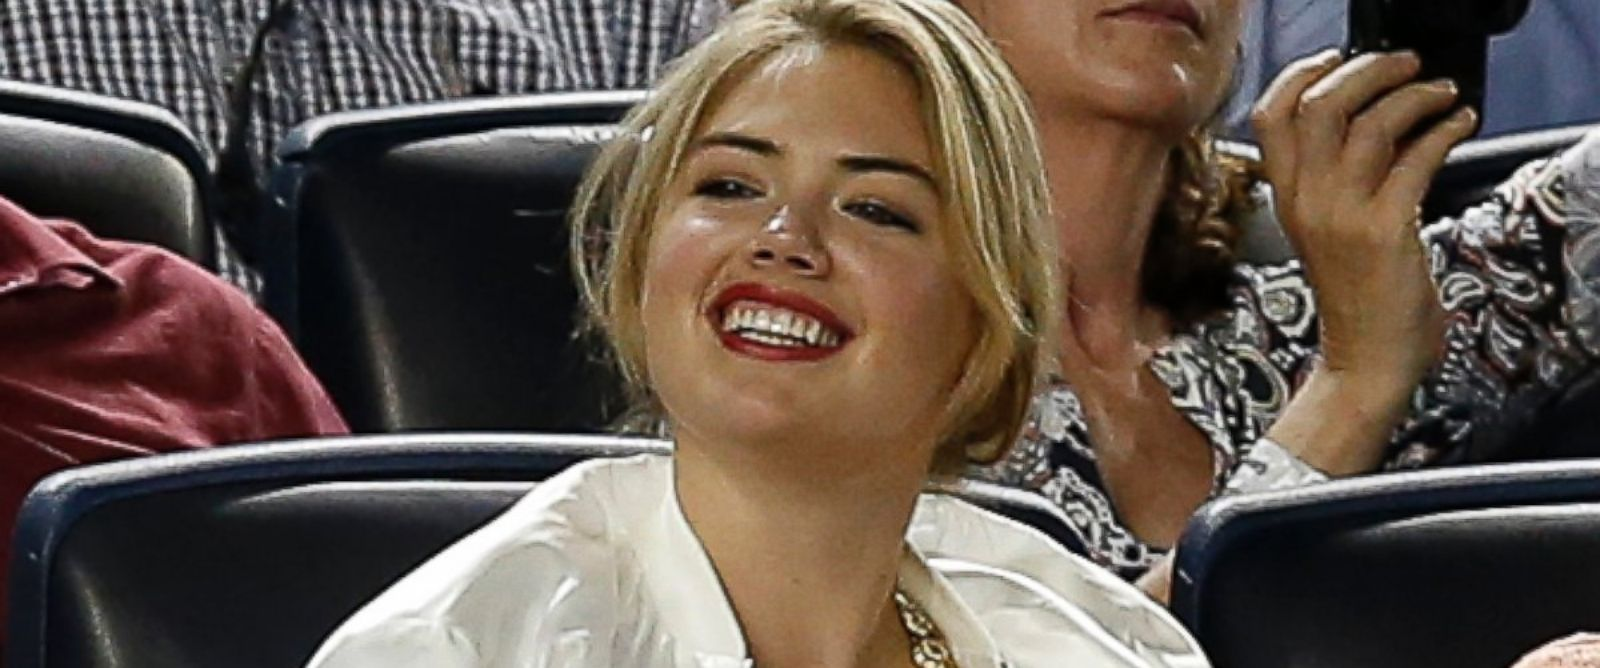 PHOTO: Supermodel Kate Upton smiles as she sits in the seats above the Detroit Tigers dugout in a baseball game between the Tigers and the New York Yankees at Yankee Stadium in New York, Aug. 4, 2014.